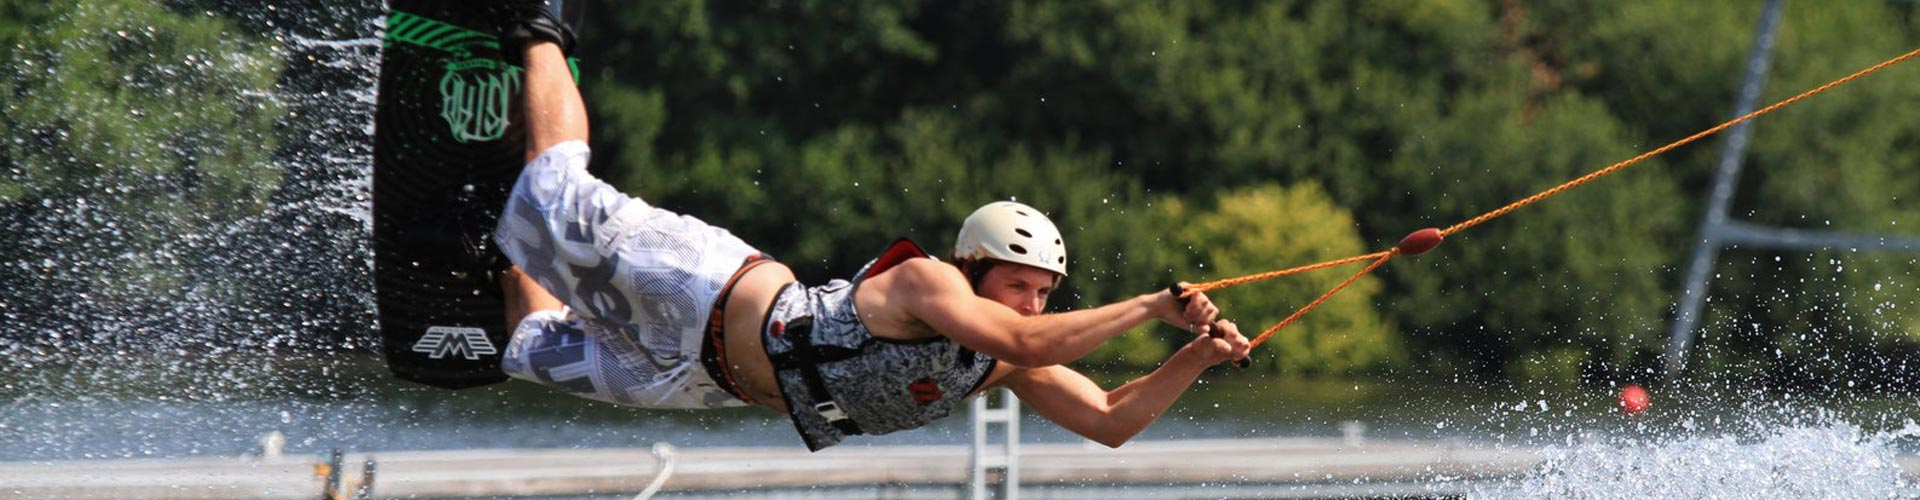 Wakeboarding Facebook layouts amp backgrounds created by